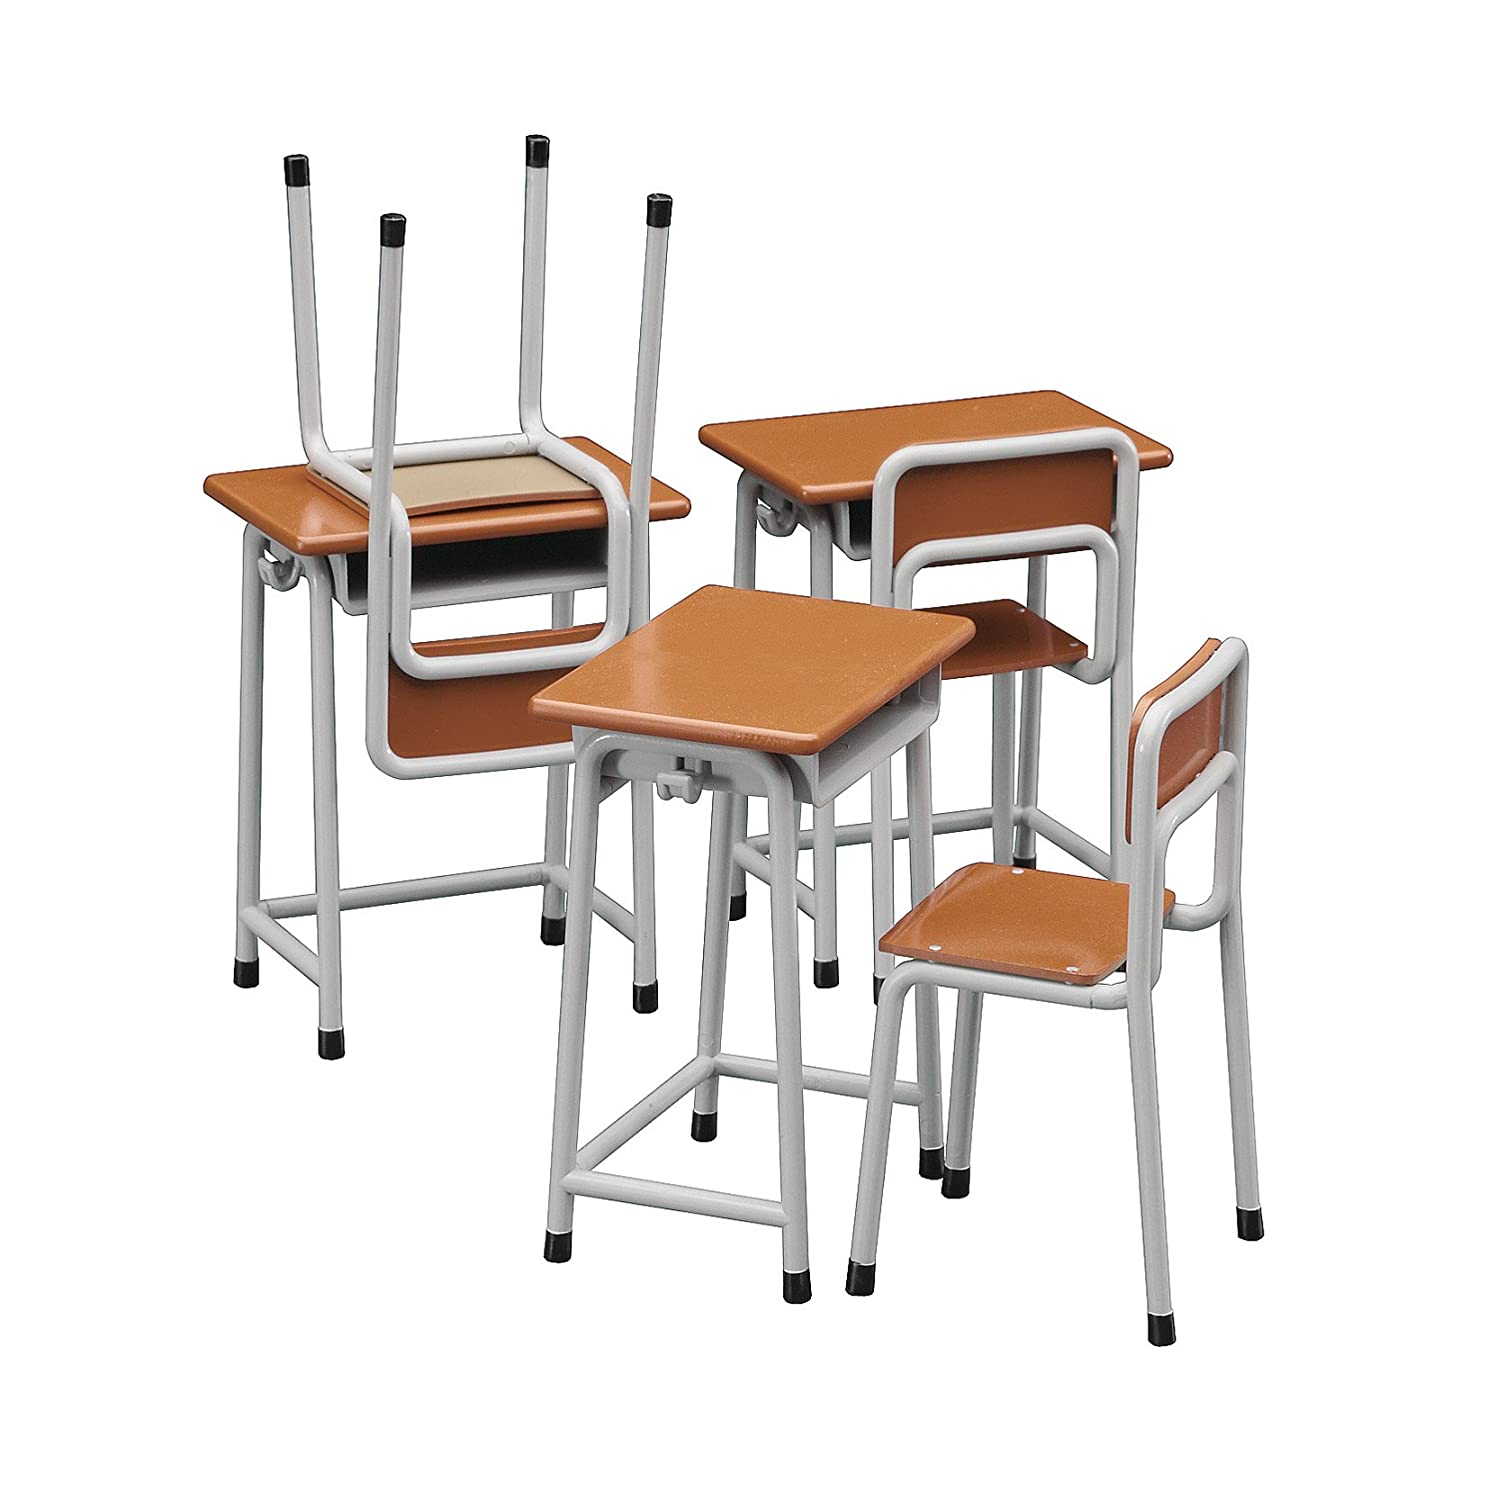 school desk and chair. amazon.com: hasegawa 62001 1/12 school desk \u0026 chair - for toy figures: toys games and o